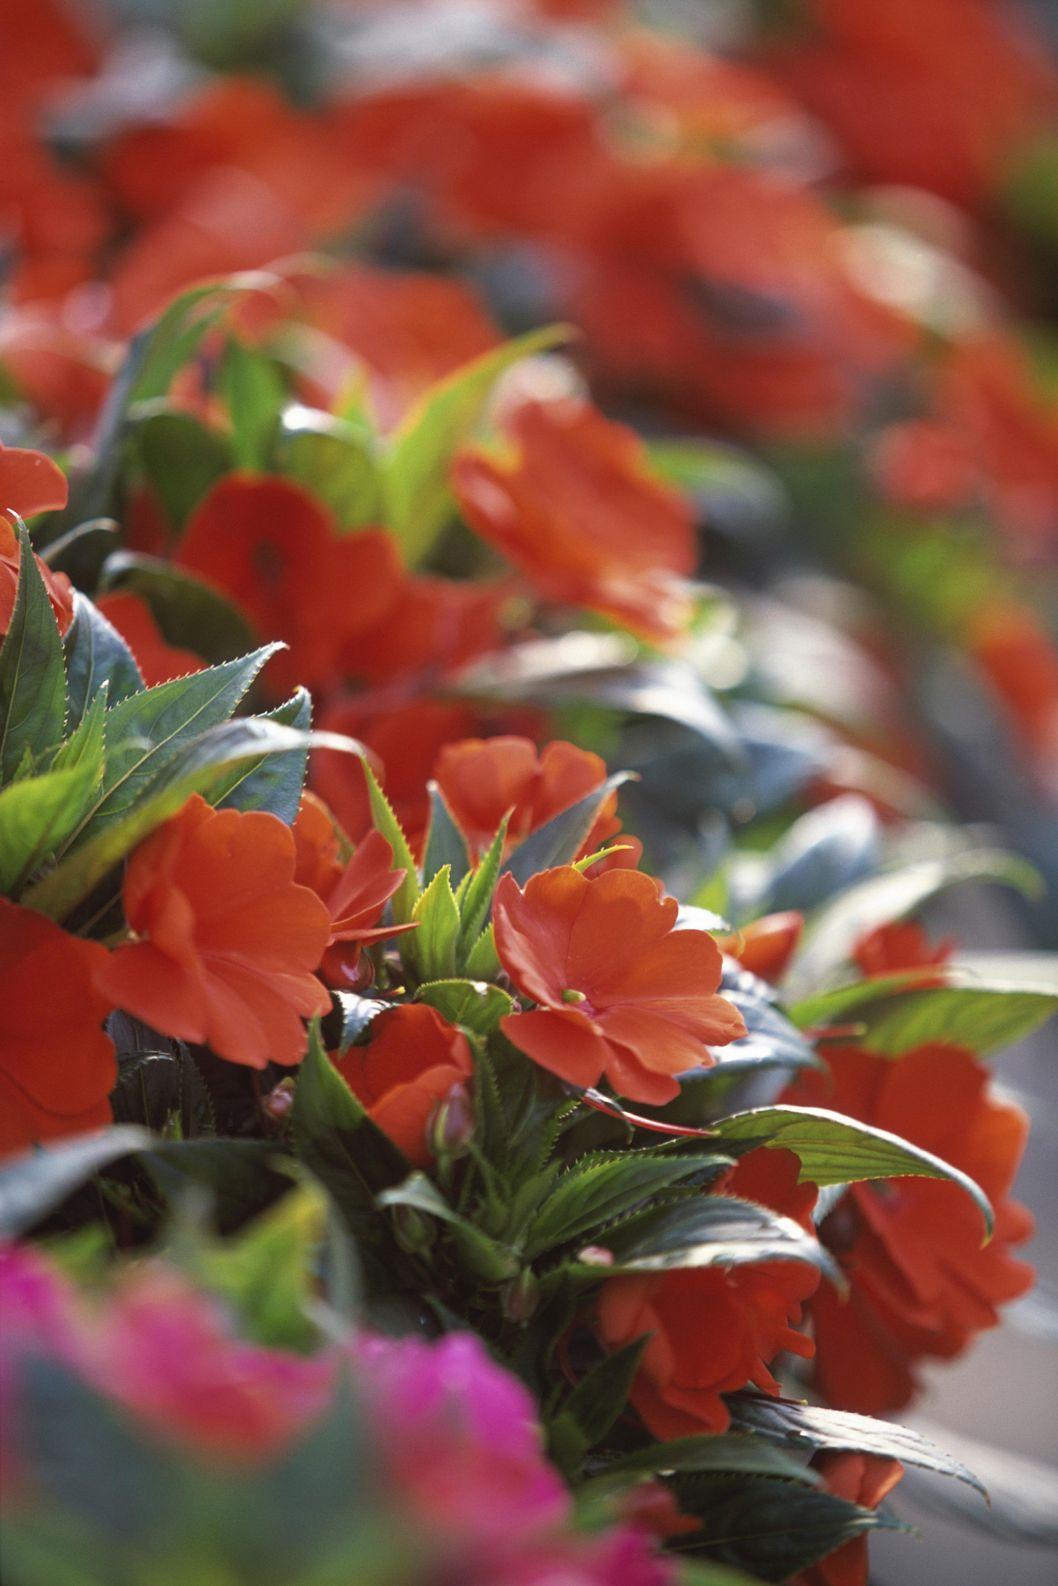 Close-up of impatiens flowers